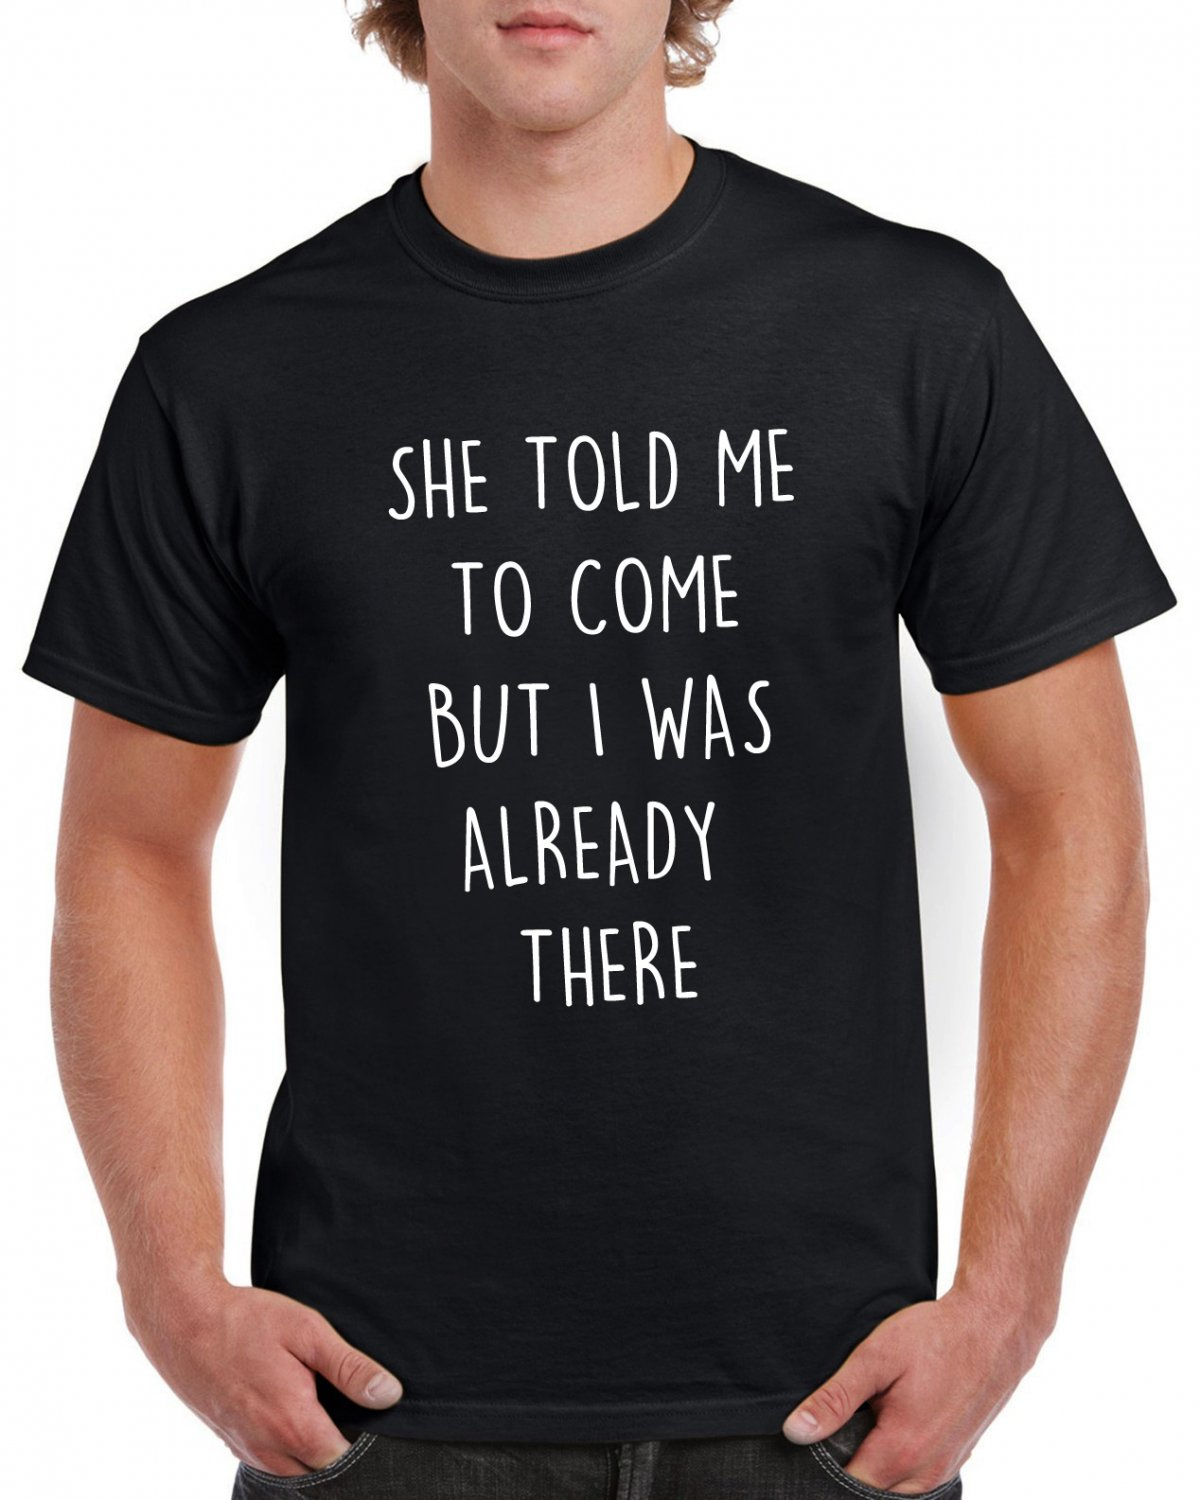 She Told Me To Come But I Was Already There Lyrics Tshirt ACDC T-shirt AC/DC Hard Rock Top Tee